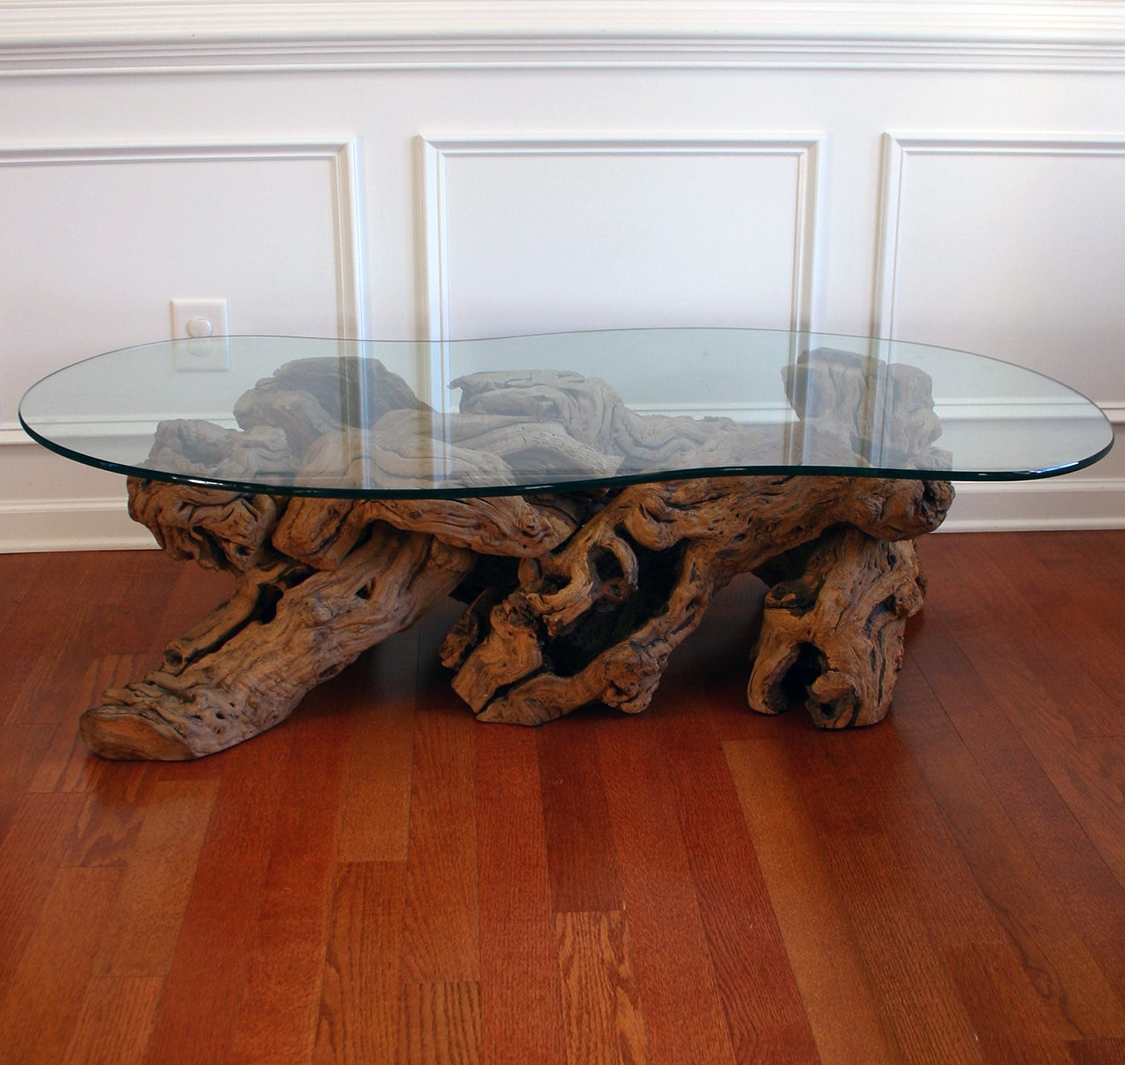 29 Incredible Driftwood Coffee Tables inside Dark Wood Coffee Tables With Glass Top (Image 1 of 30)